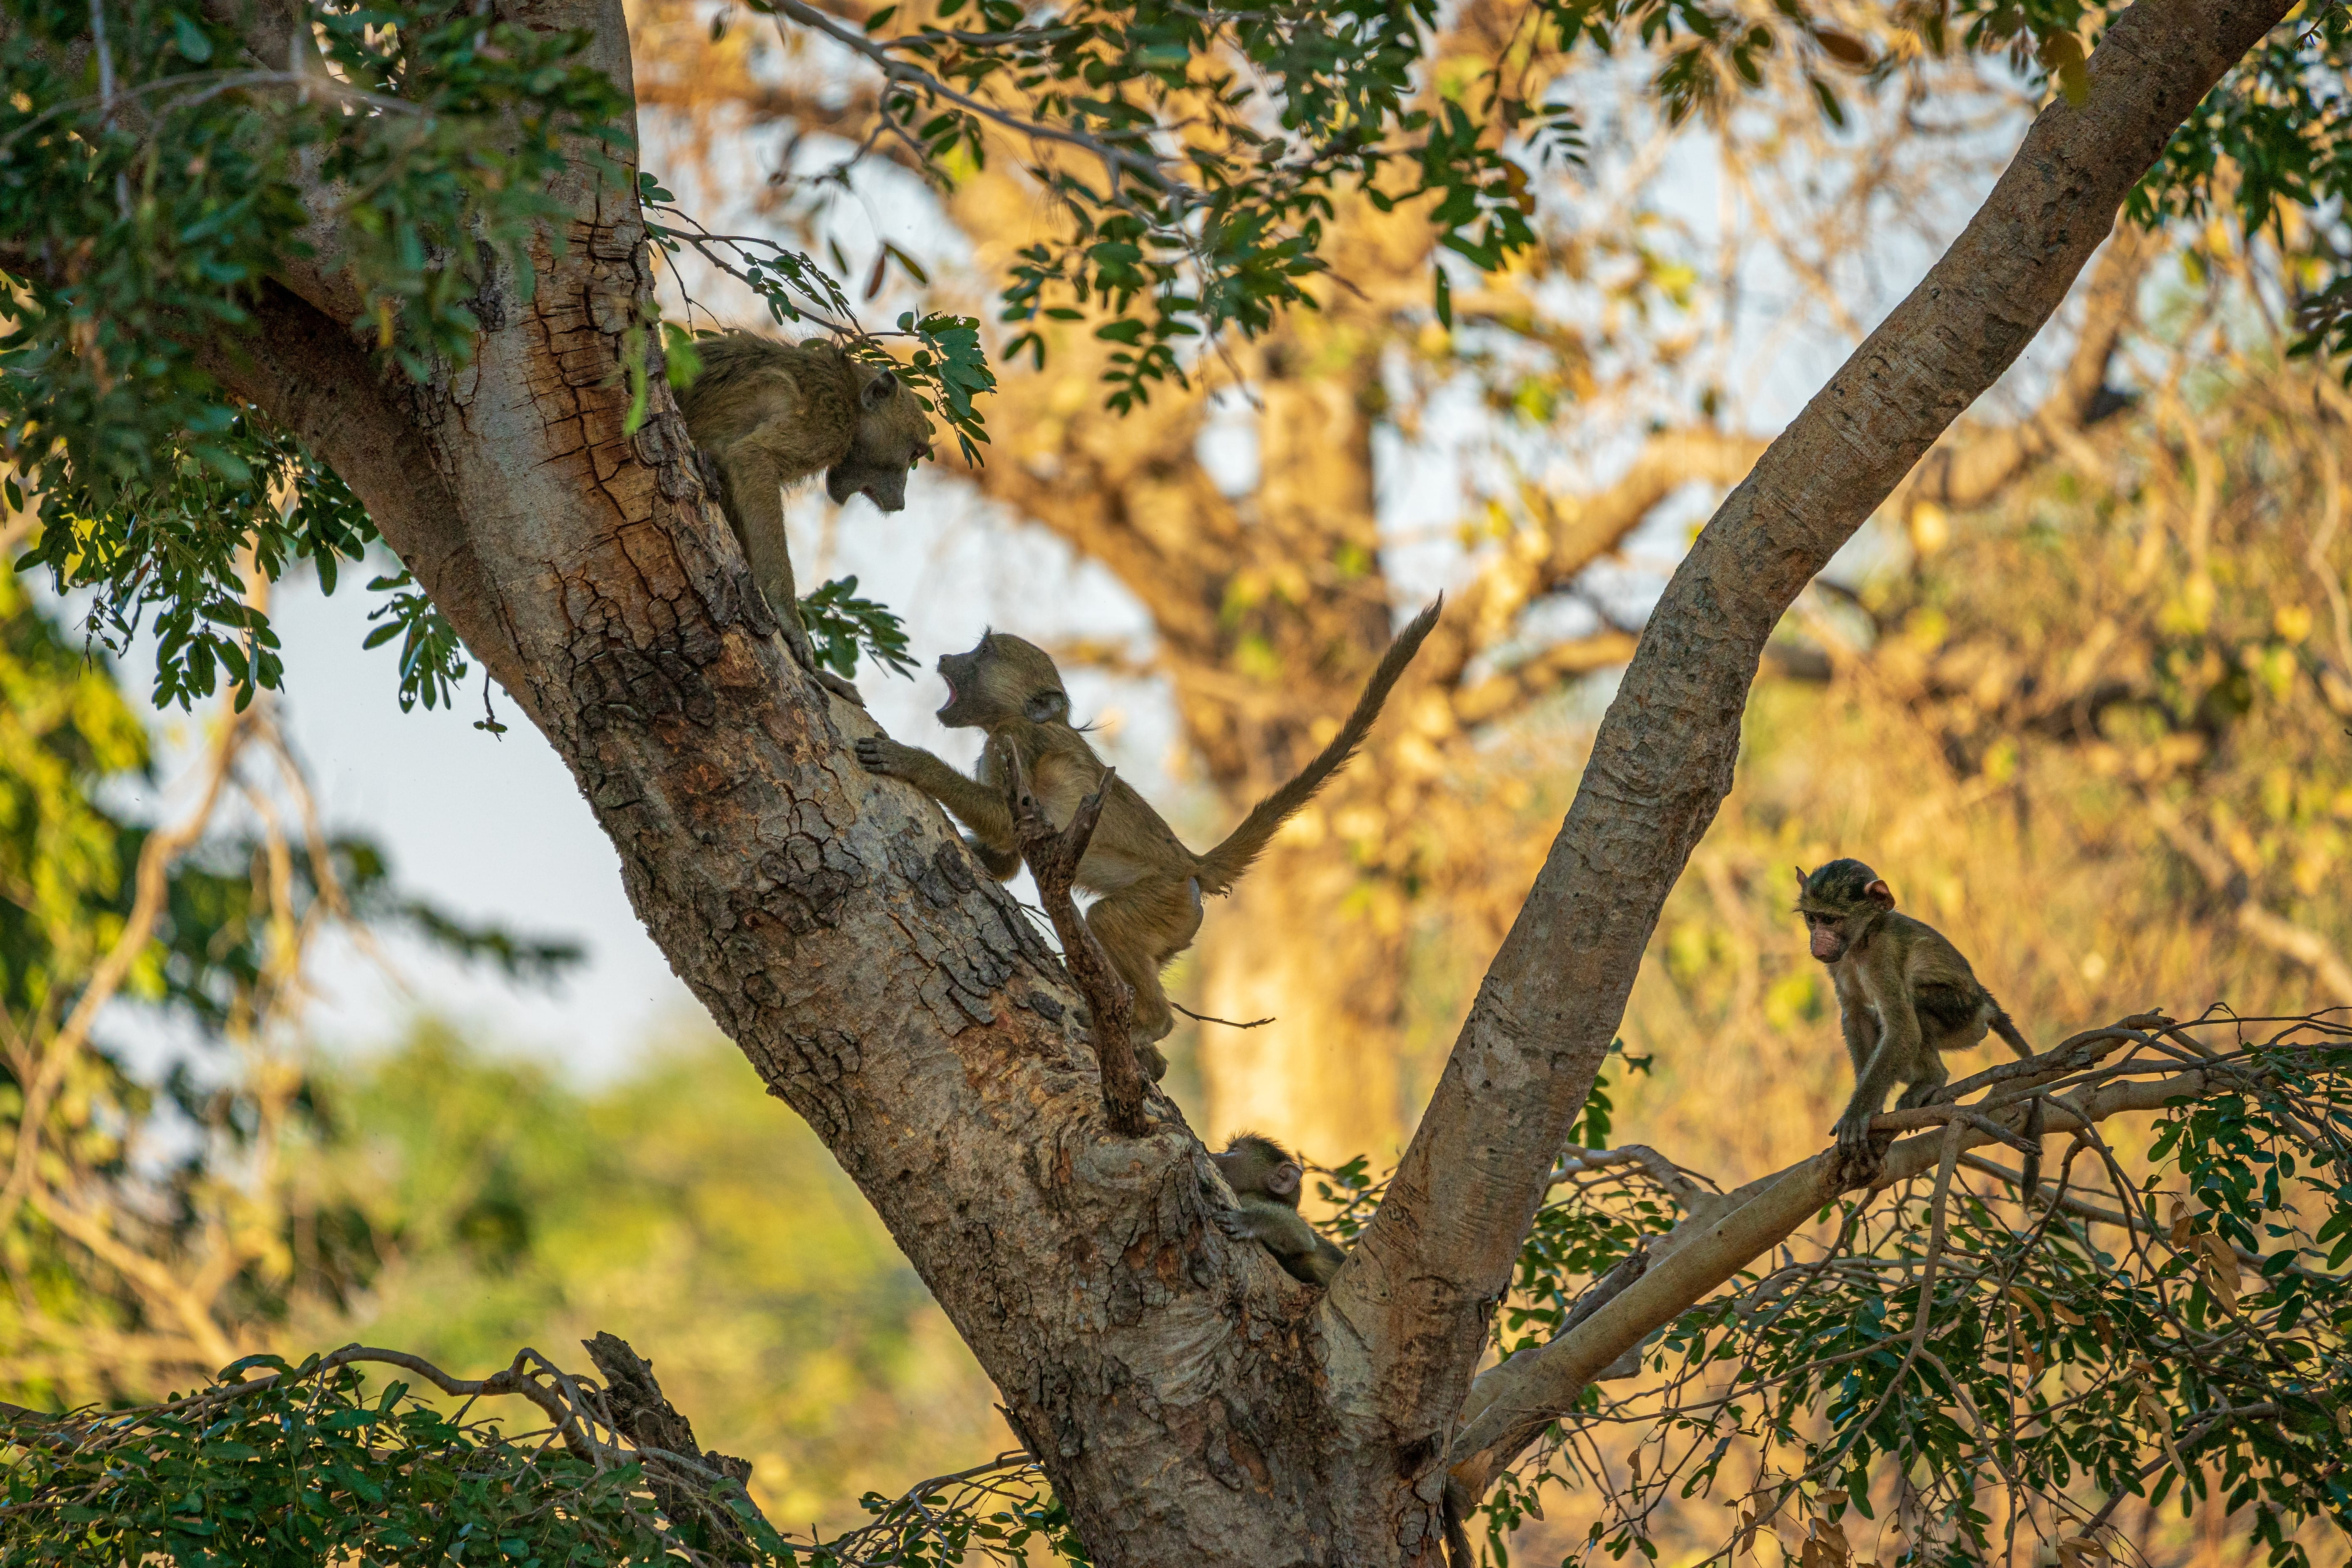 Wildlife Photographer of the Year - Orsted employee winner